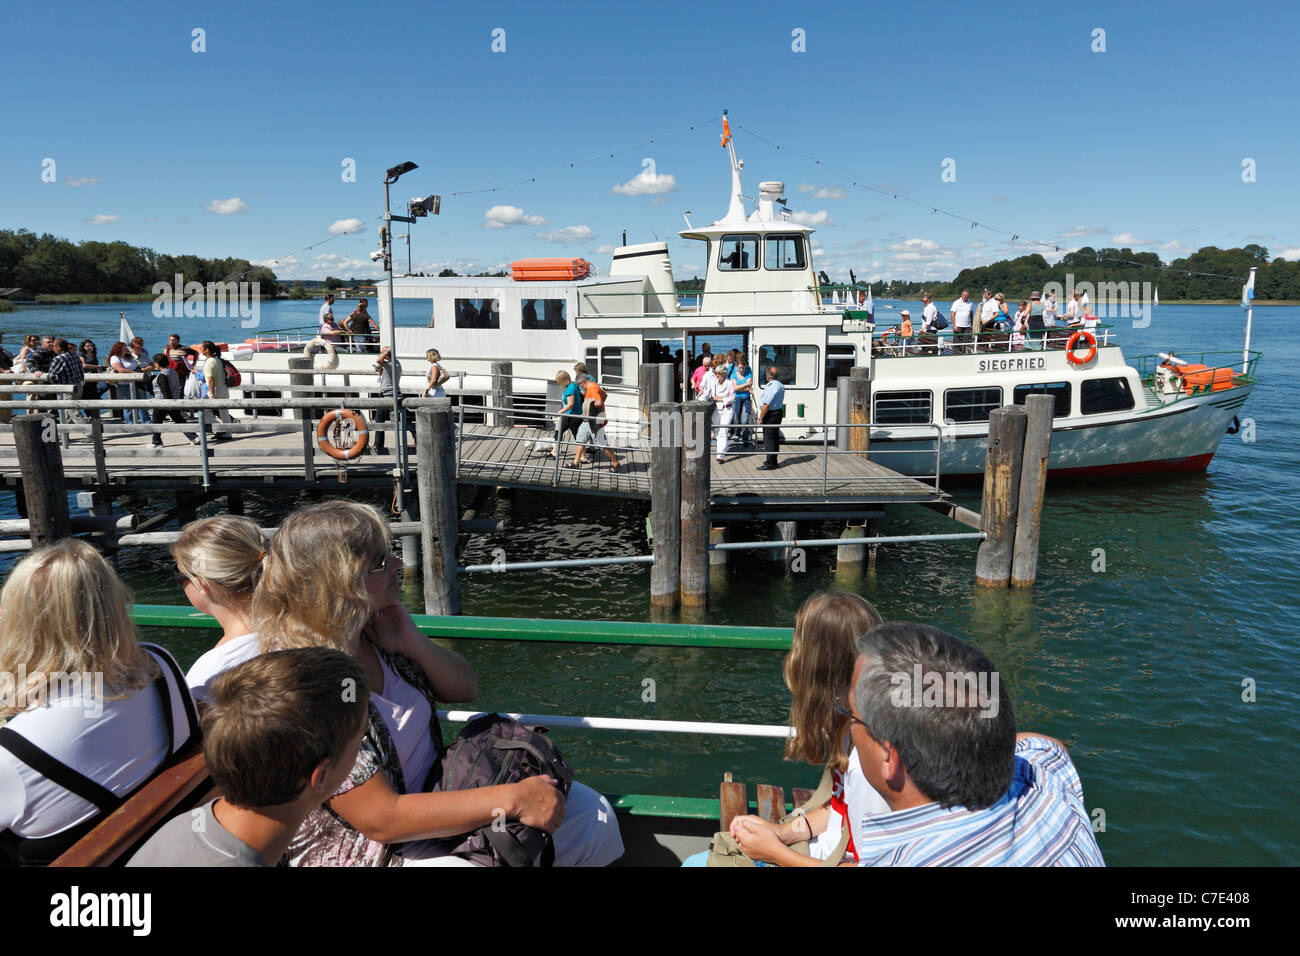 Passengers on a Chiemsee Ferry Boat at the Herreninsel, Chiemgau Upper Bavaria Germany Stock Photo